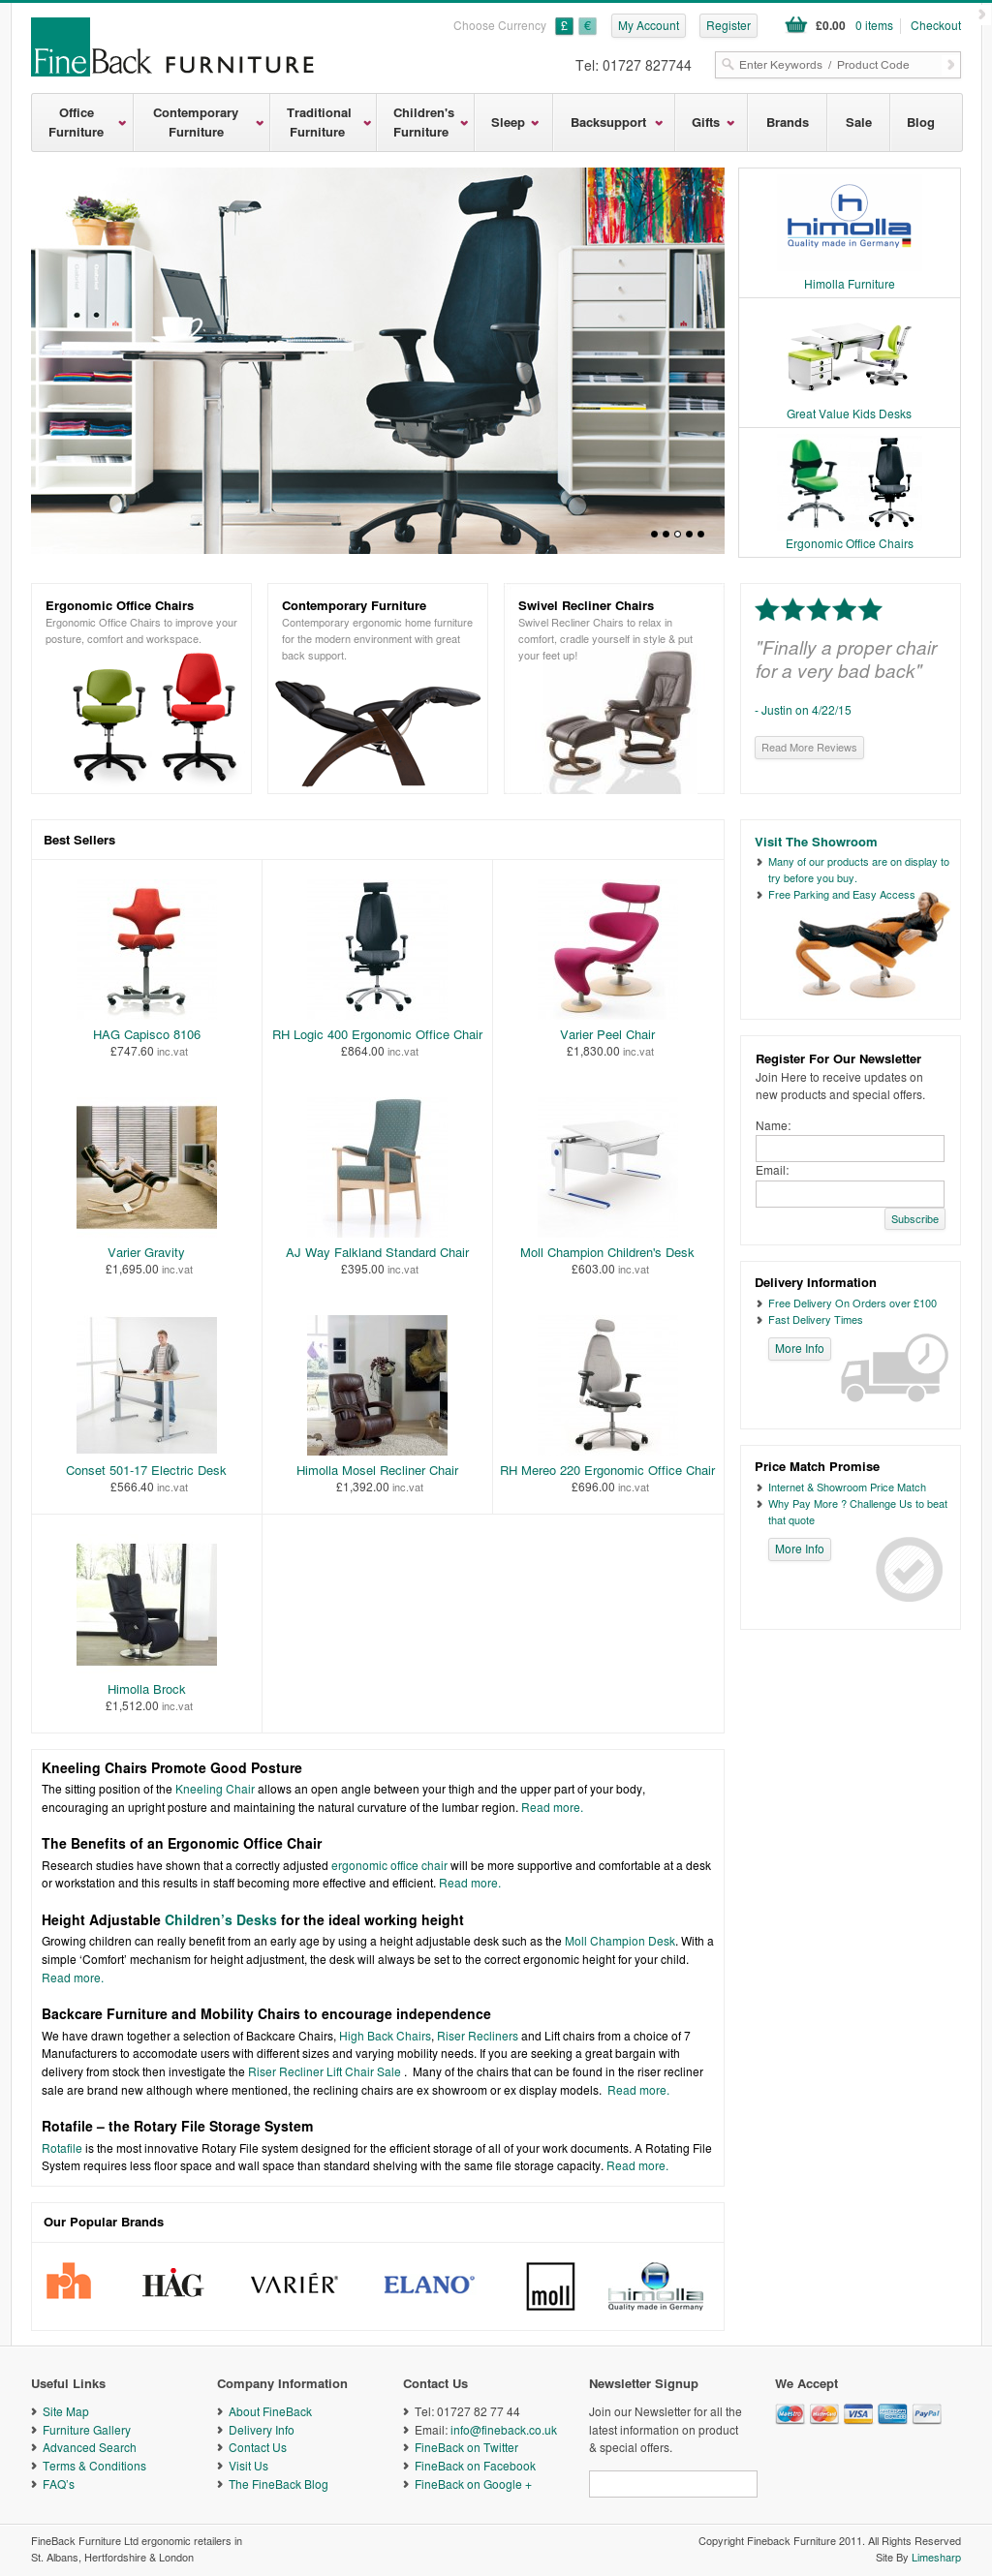 Fineback Furniture Competitors Revenue And Employees Owler